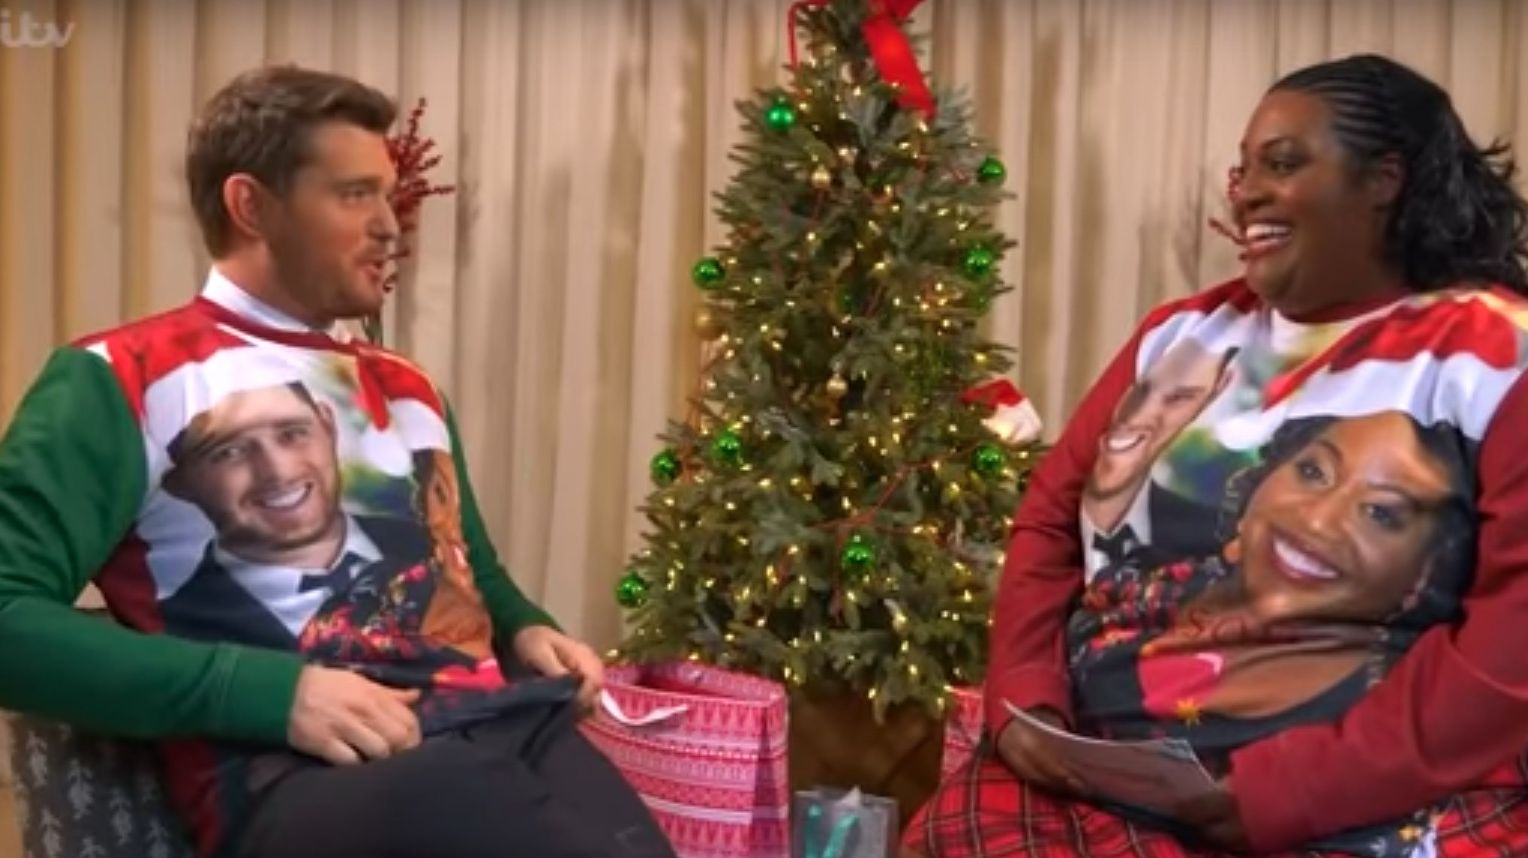 This Morning's Alison Hammond interviewed Michael Bublé and it was as wild as you'd expect